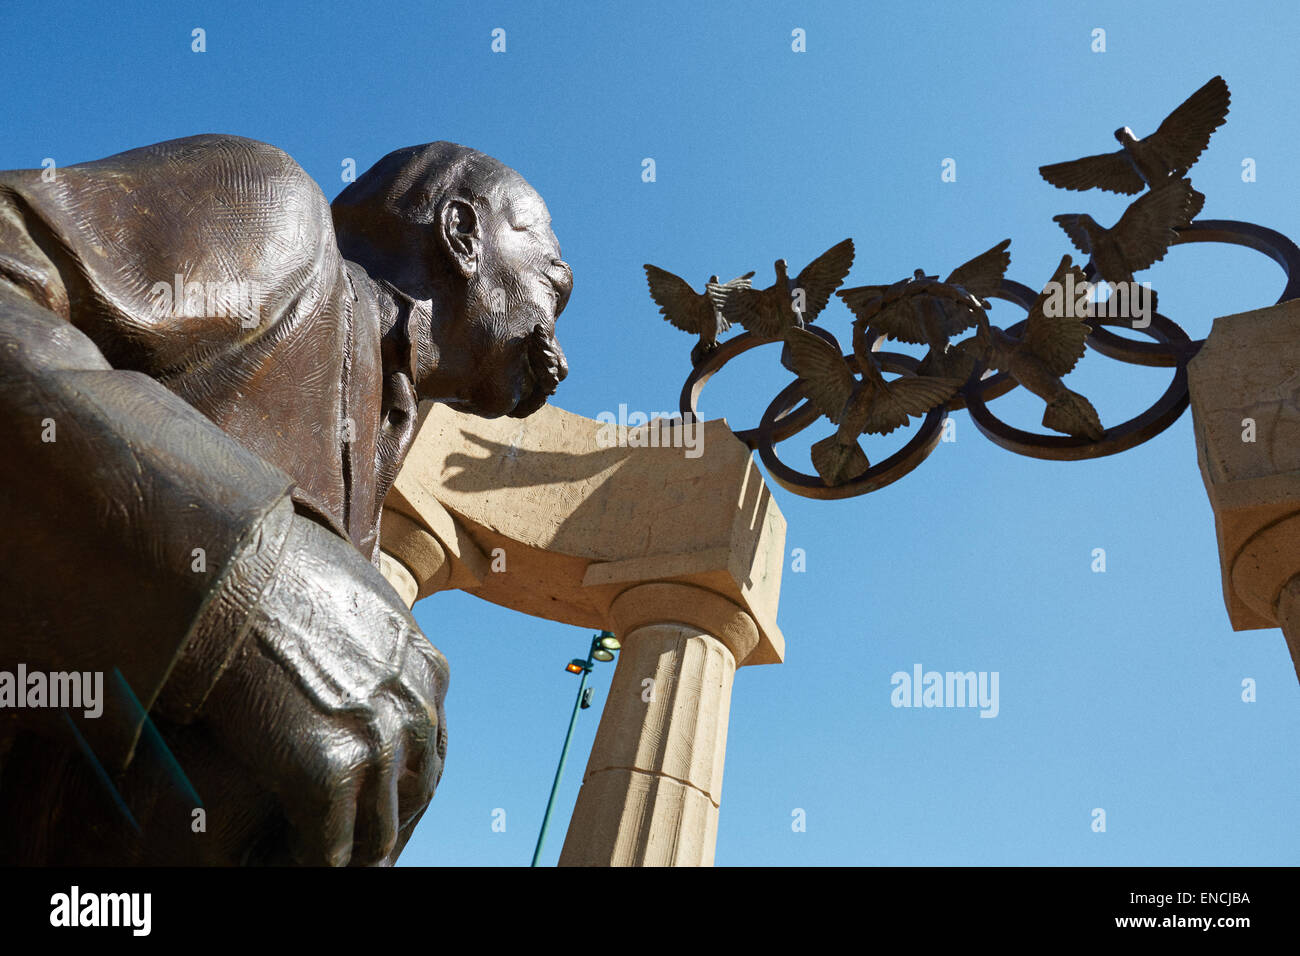 Downtown Atlanta in Georga USA   Picture: Statue of Pierre de Coubertin and Olympic Rings, doves at Centennial Olympic - Stock Image